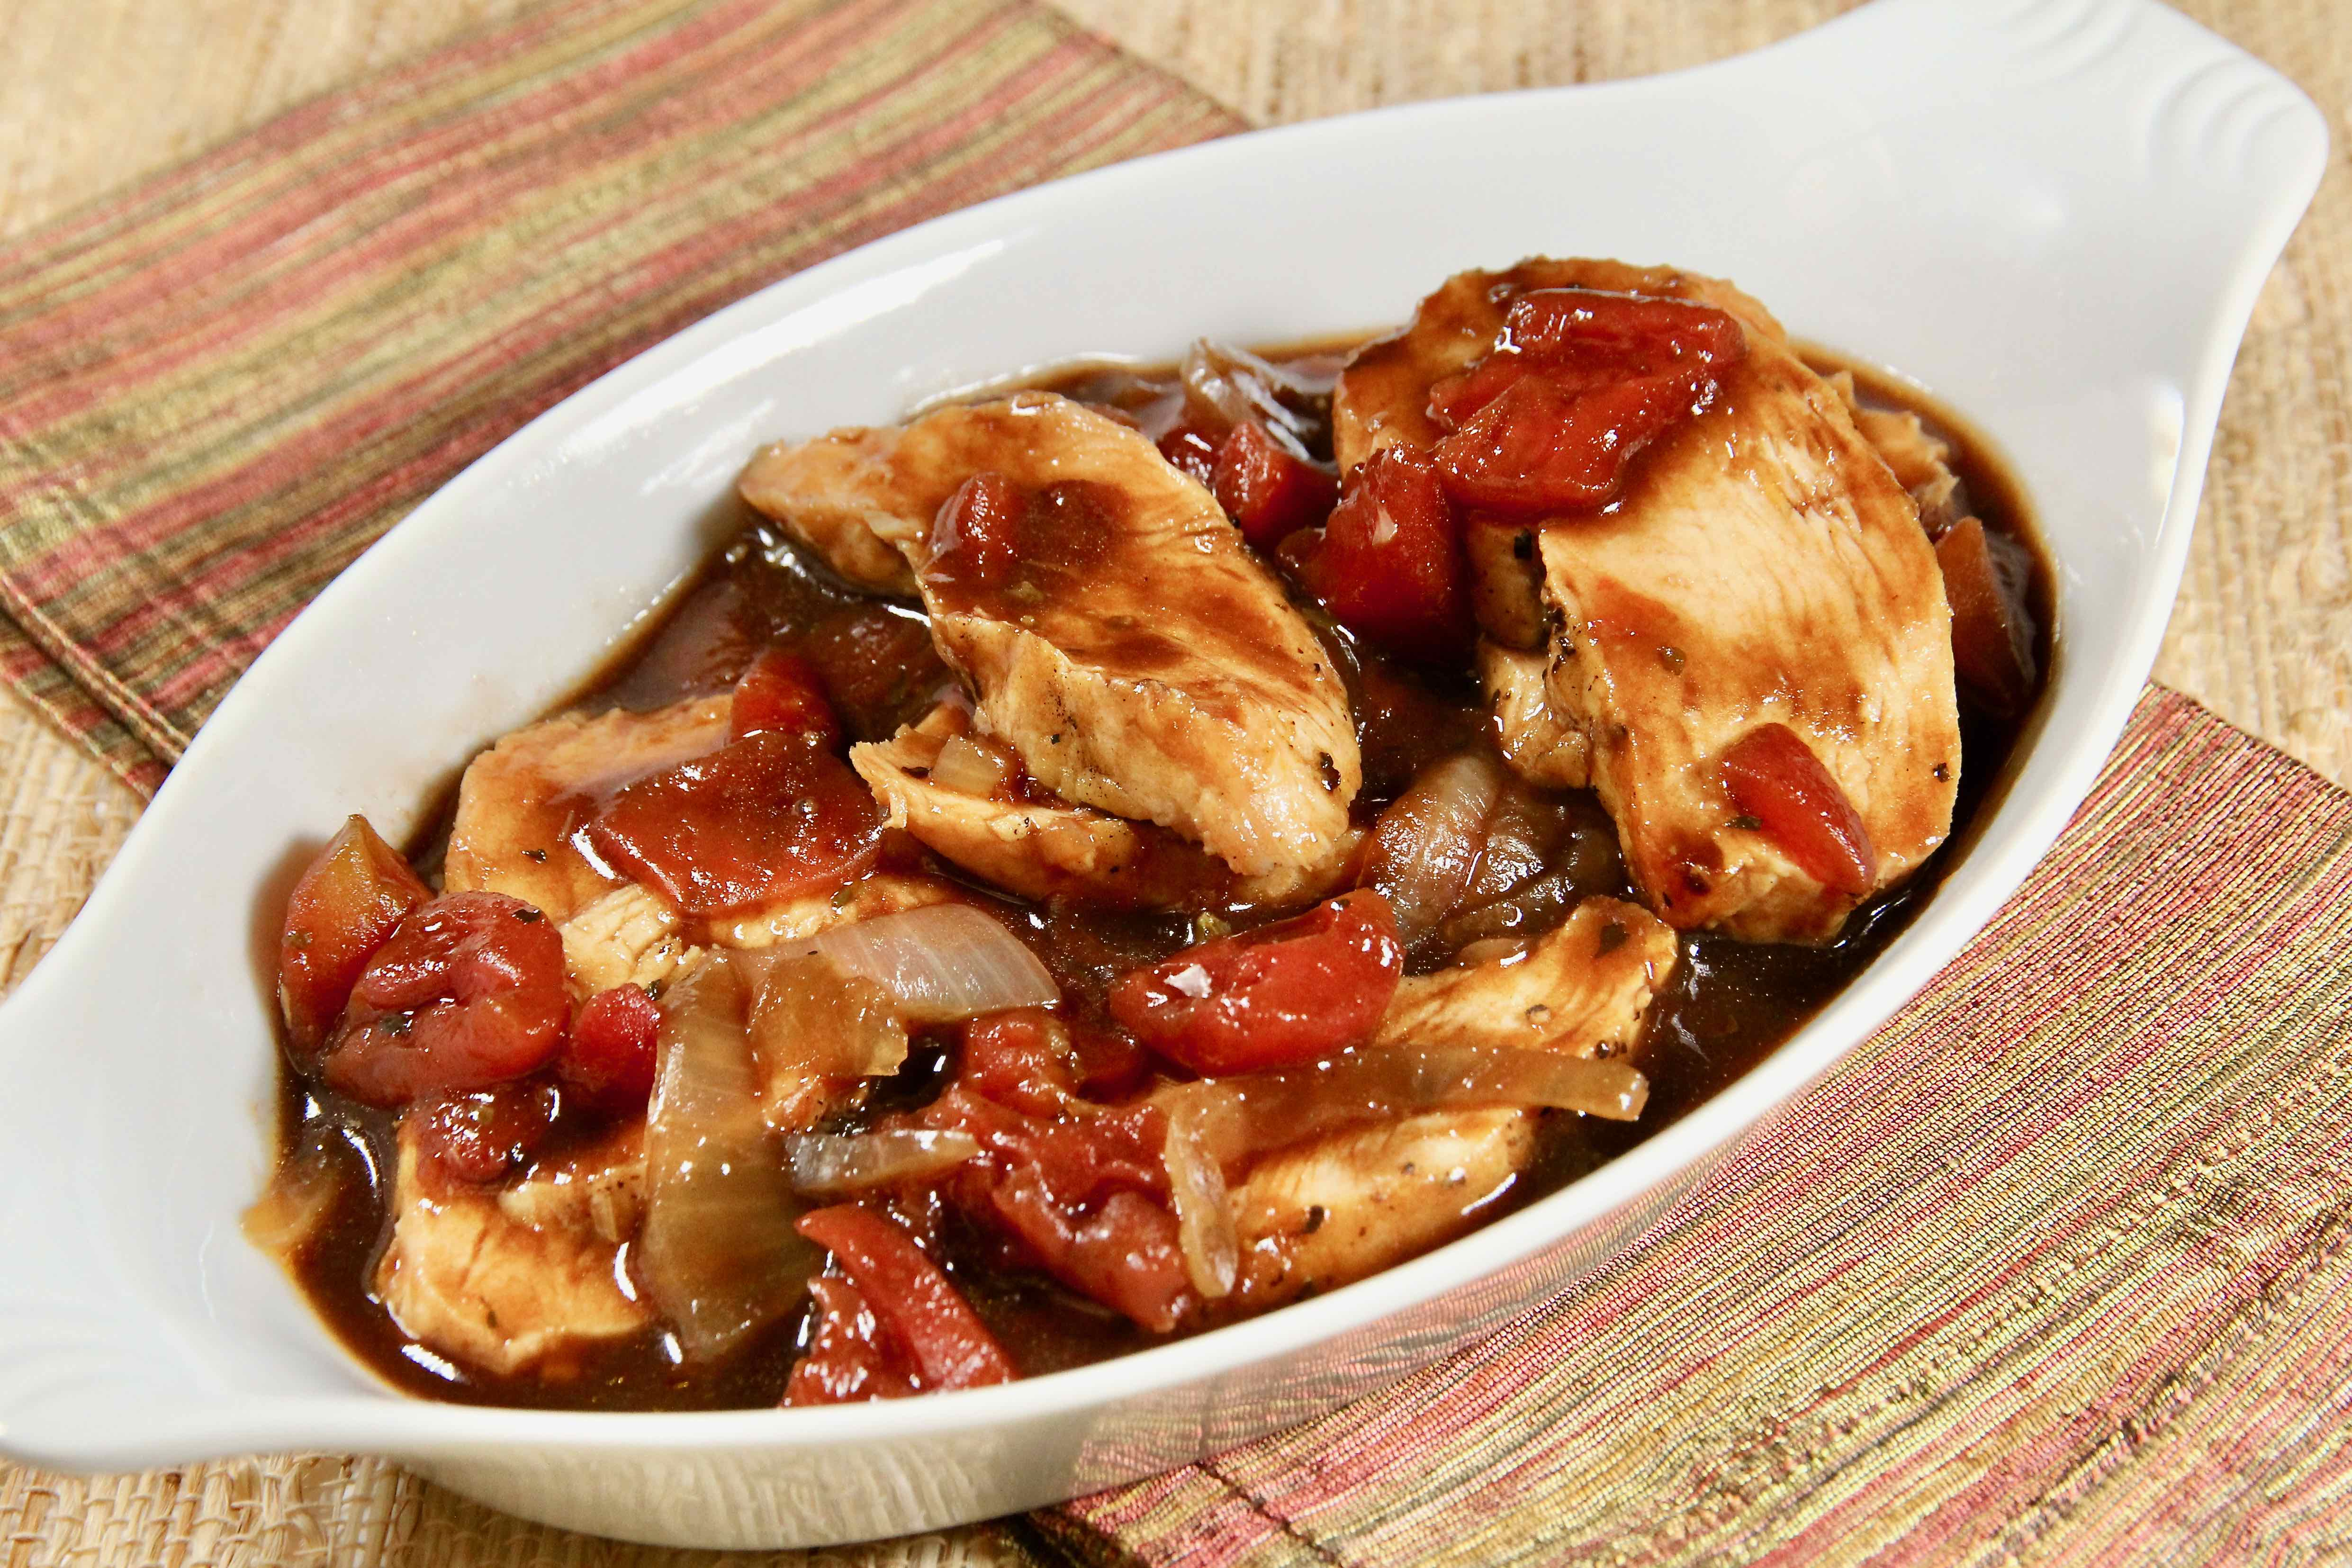 Grilled Chicken Breasts with Balsamic Sauce